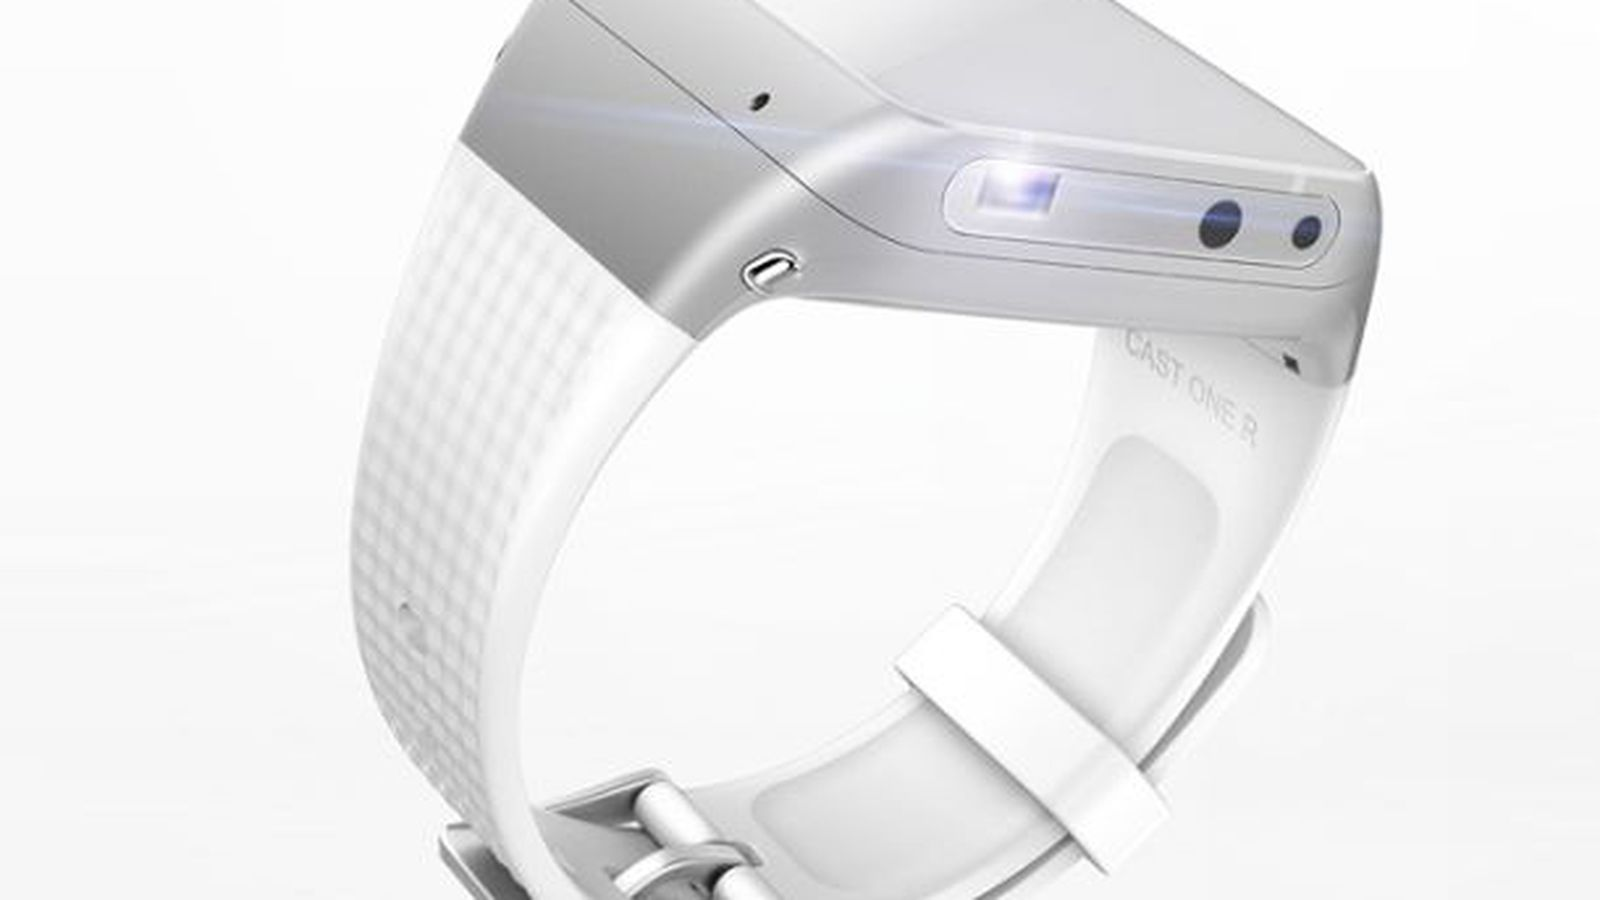 Asu Cast One smartwatch with built-in projector is now a ...